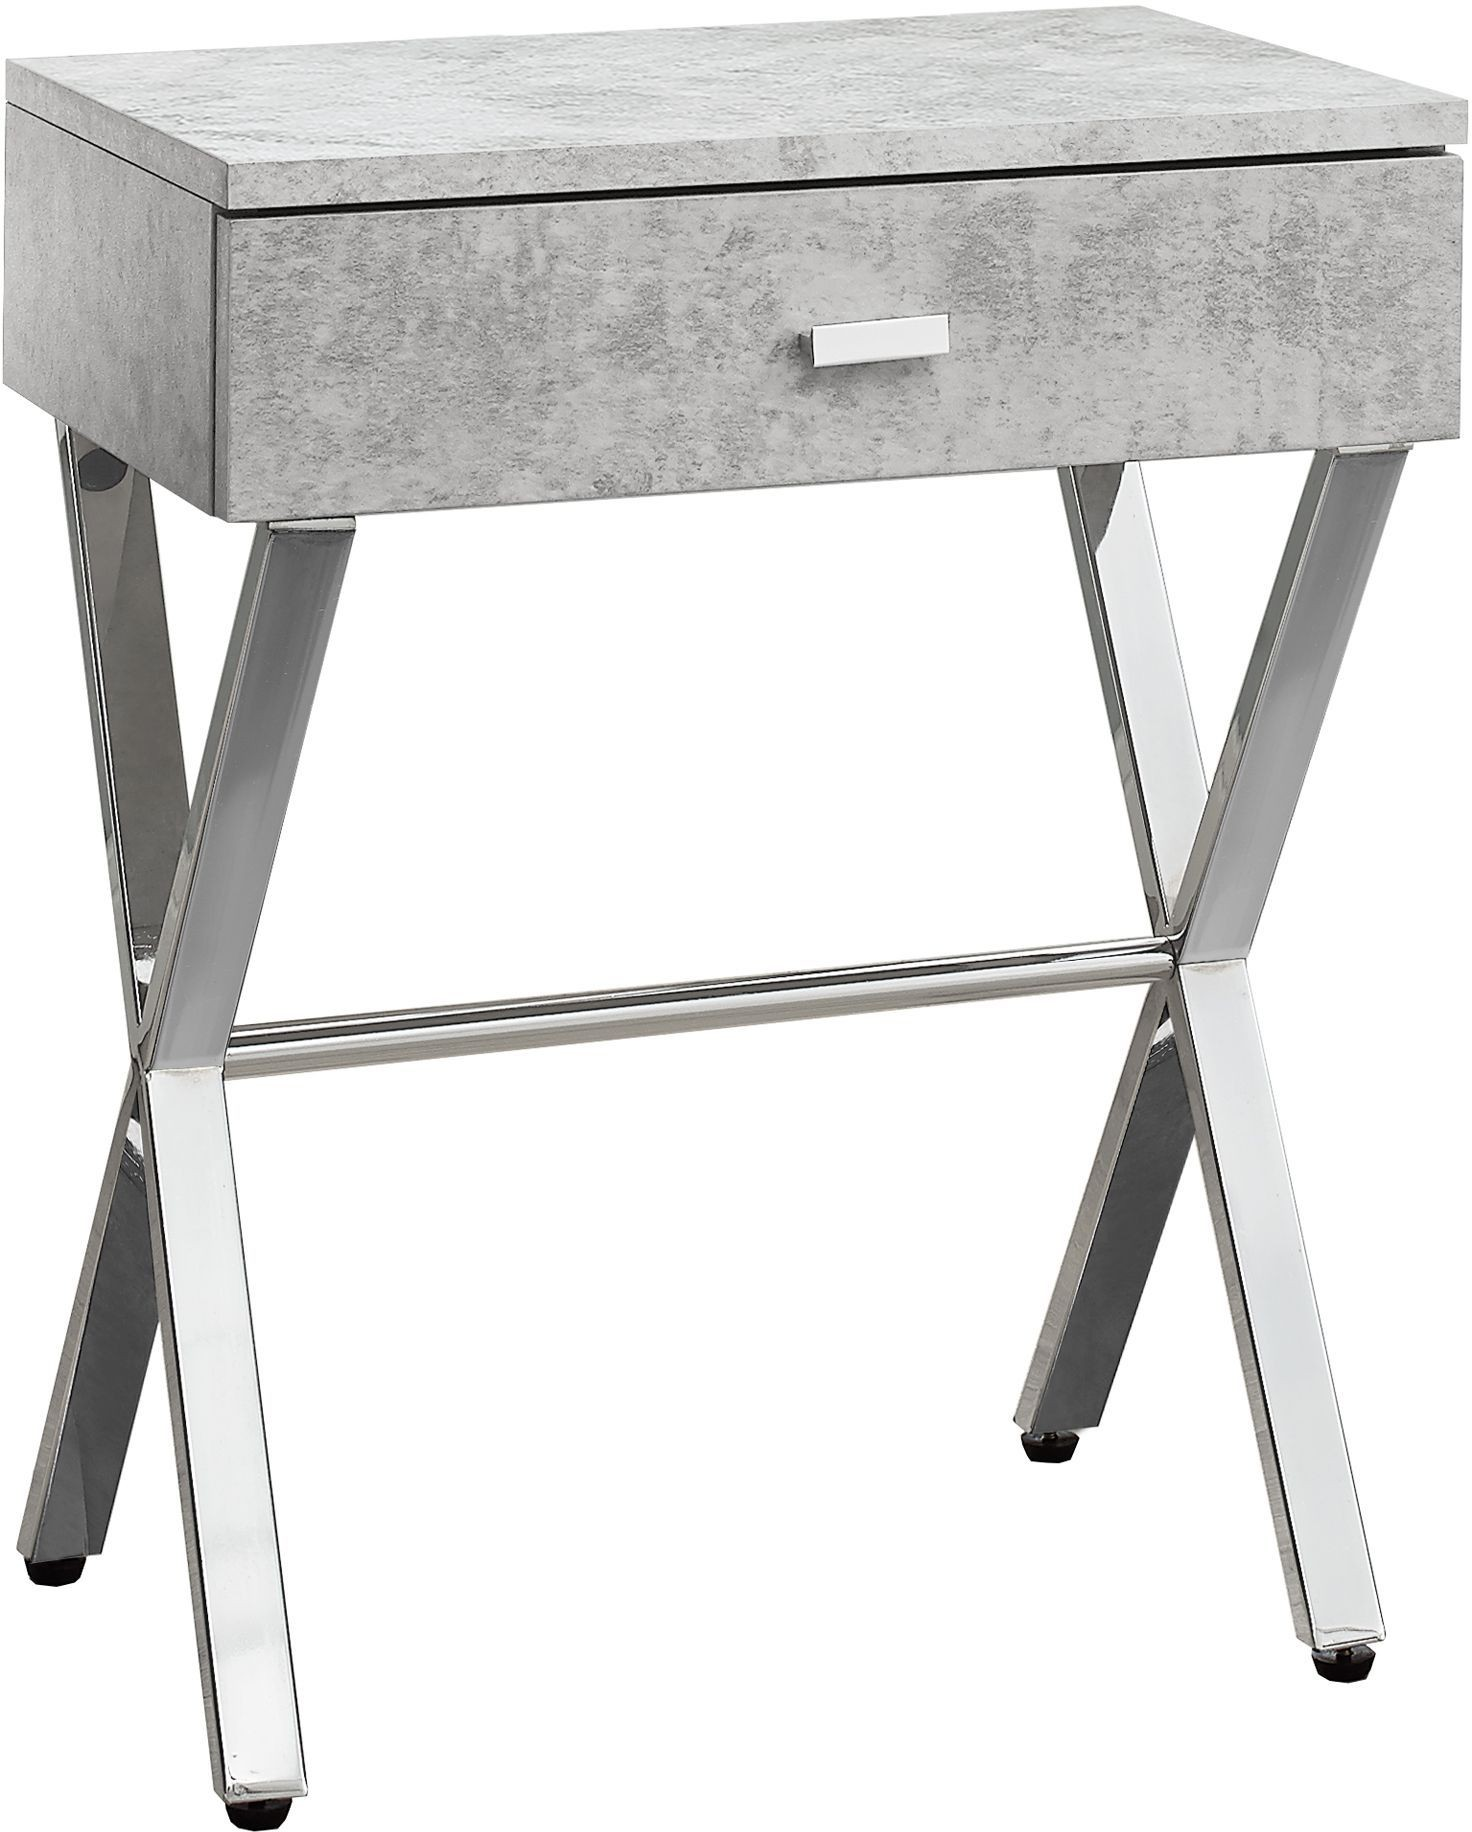 grey cement accent table from monarch coleman furniture granite top coffee and end tables garden white bedside plastic cloth storage chest seat ikea drop leaf pier made